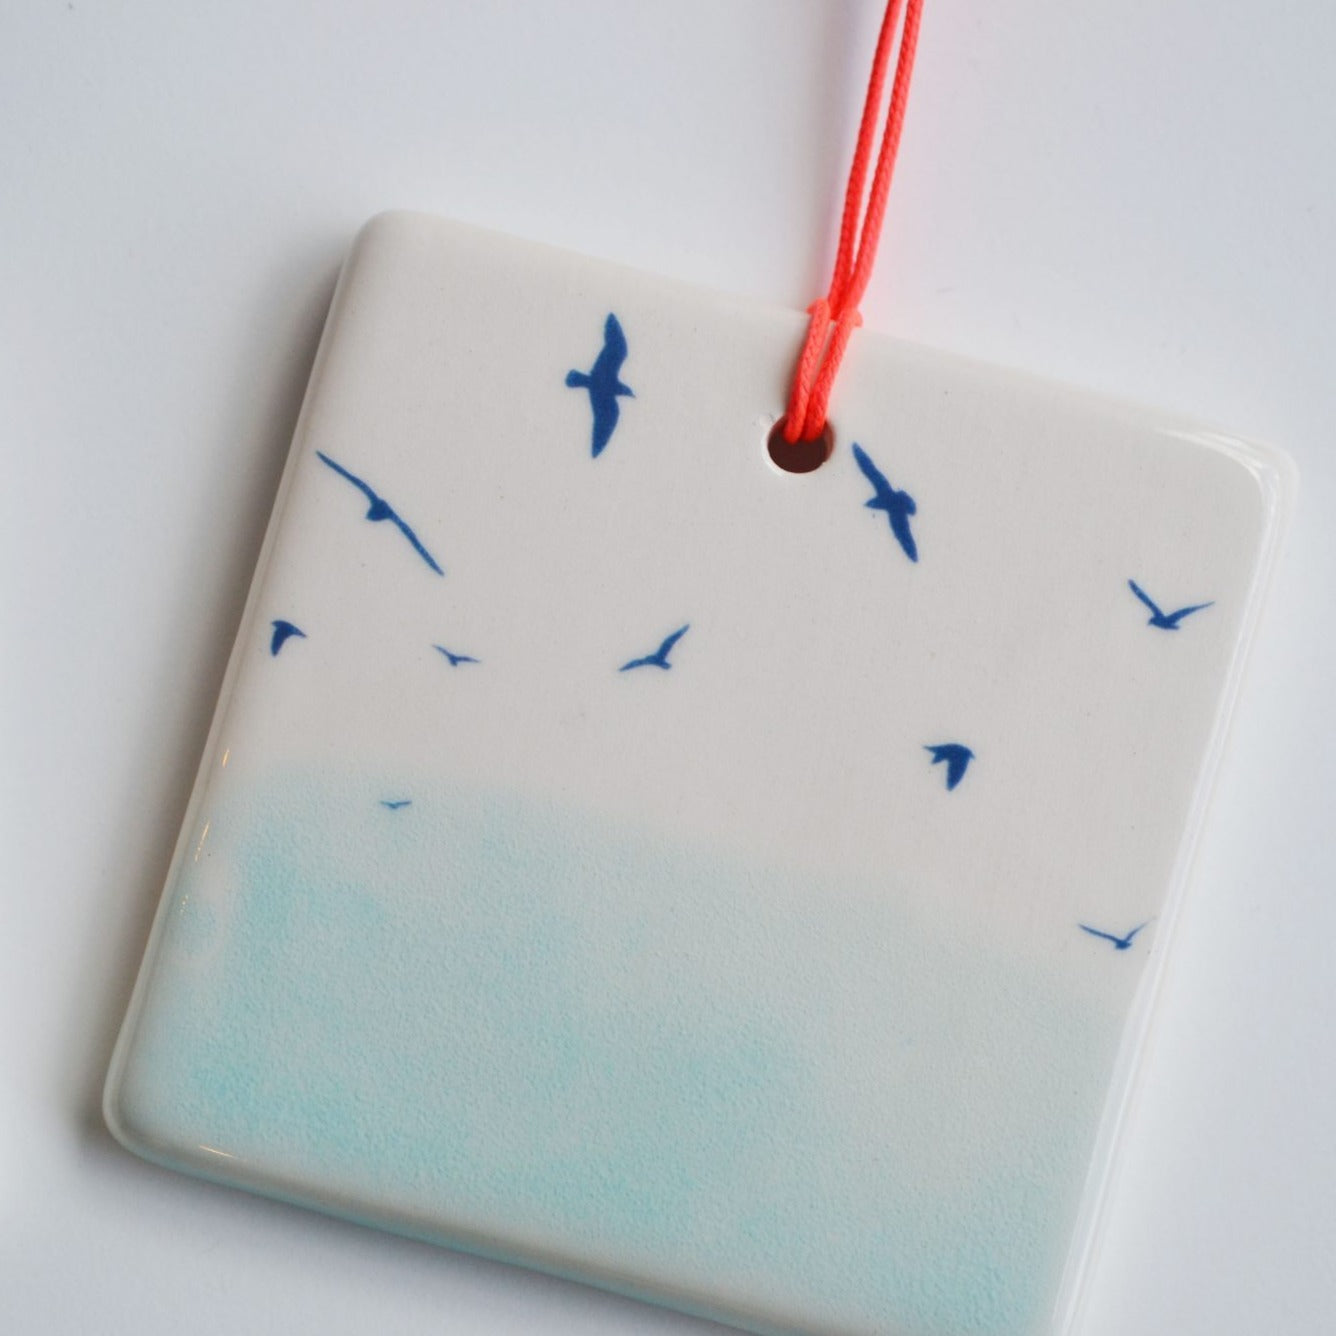 Bird in Flight Tile